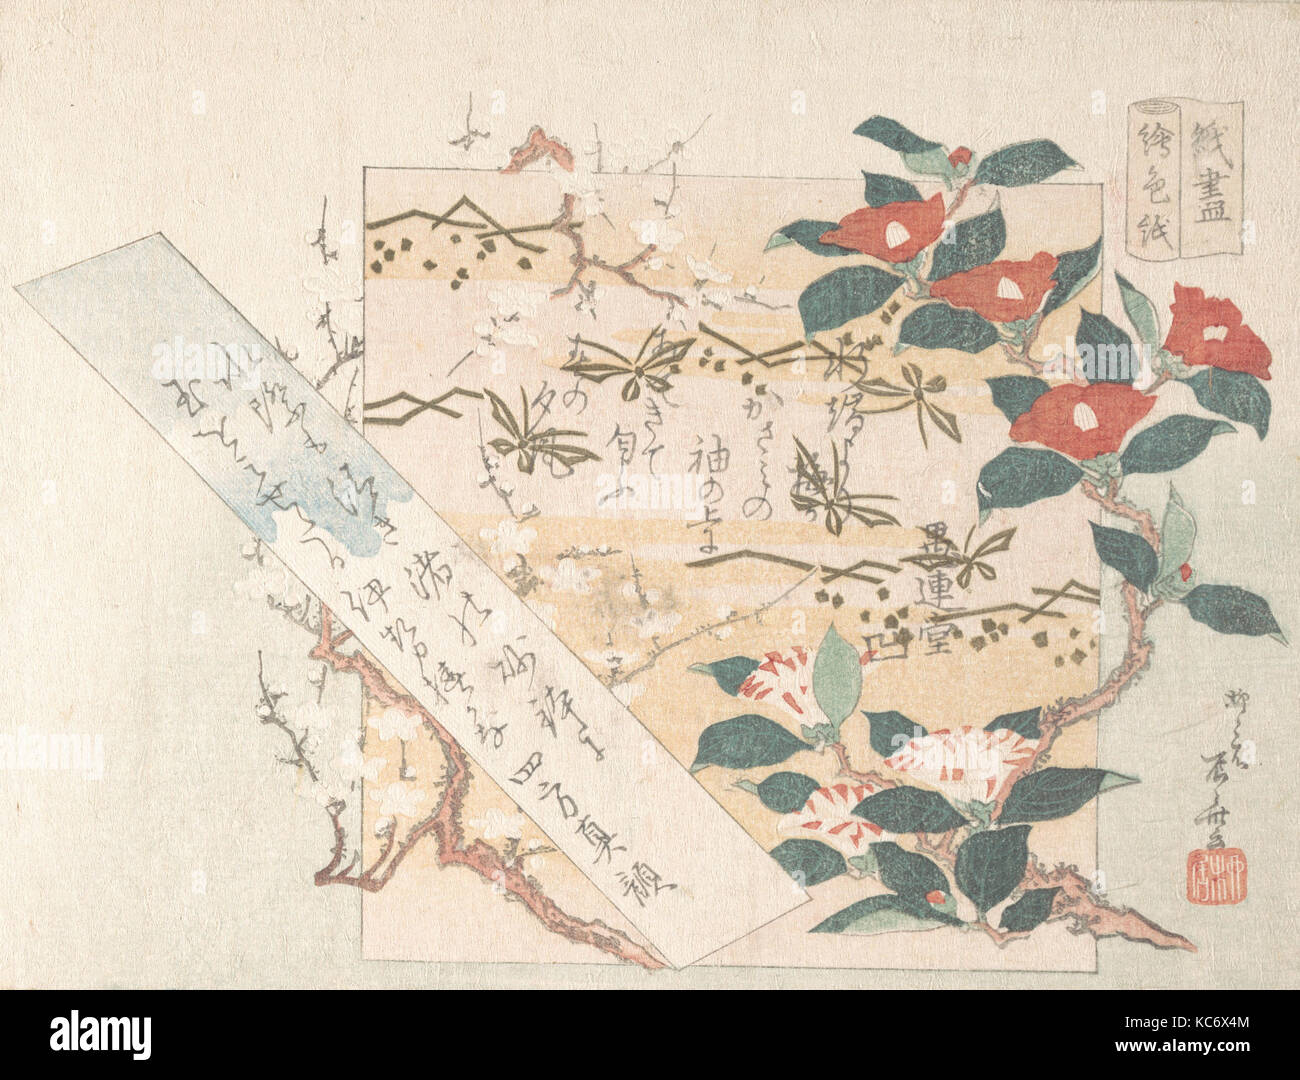 Designs Of Writing Paper With Flowers Ryrykyo Shinsai 19th Stock